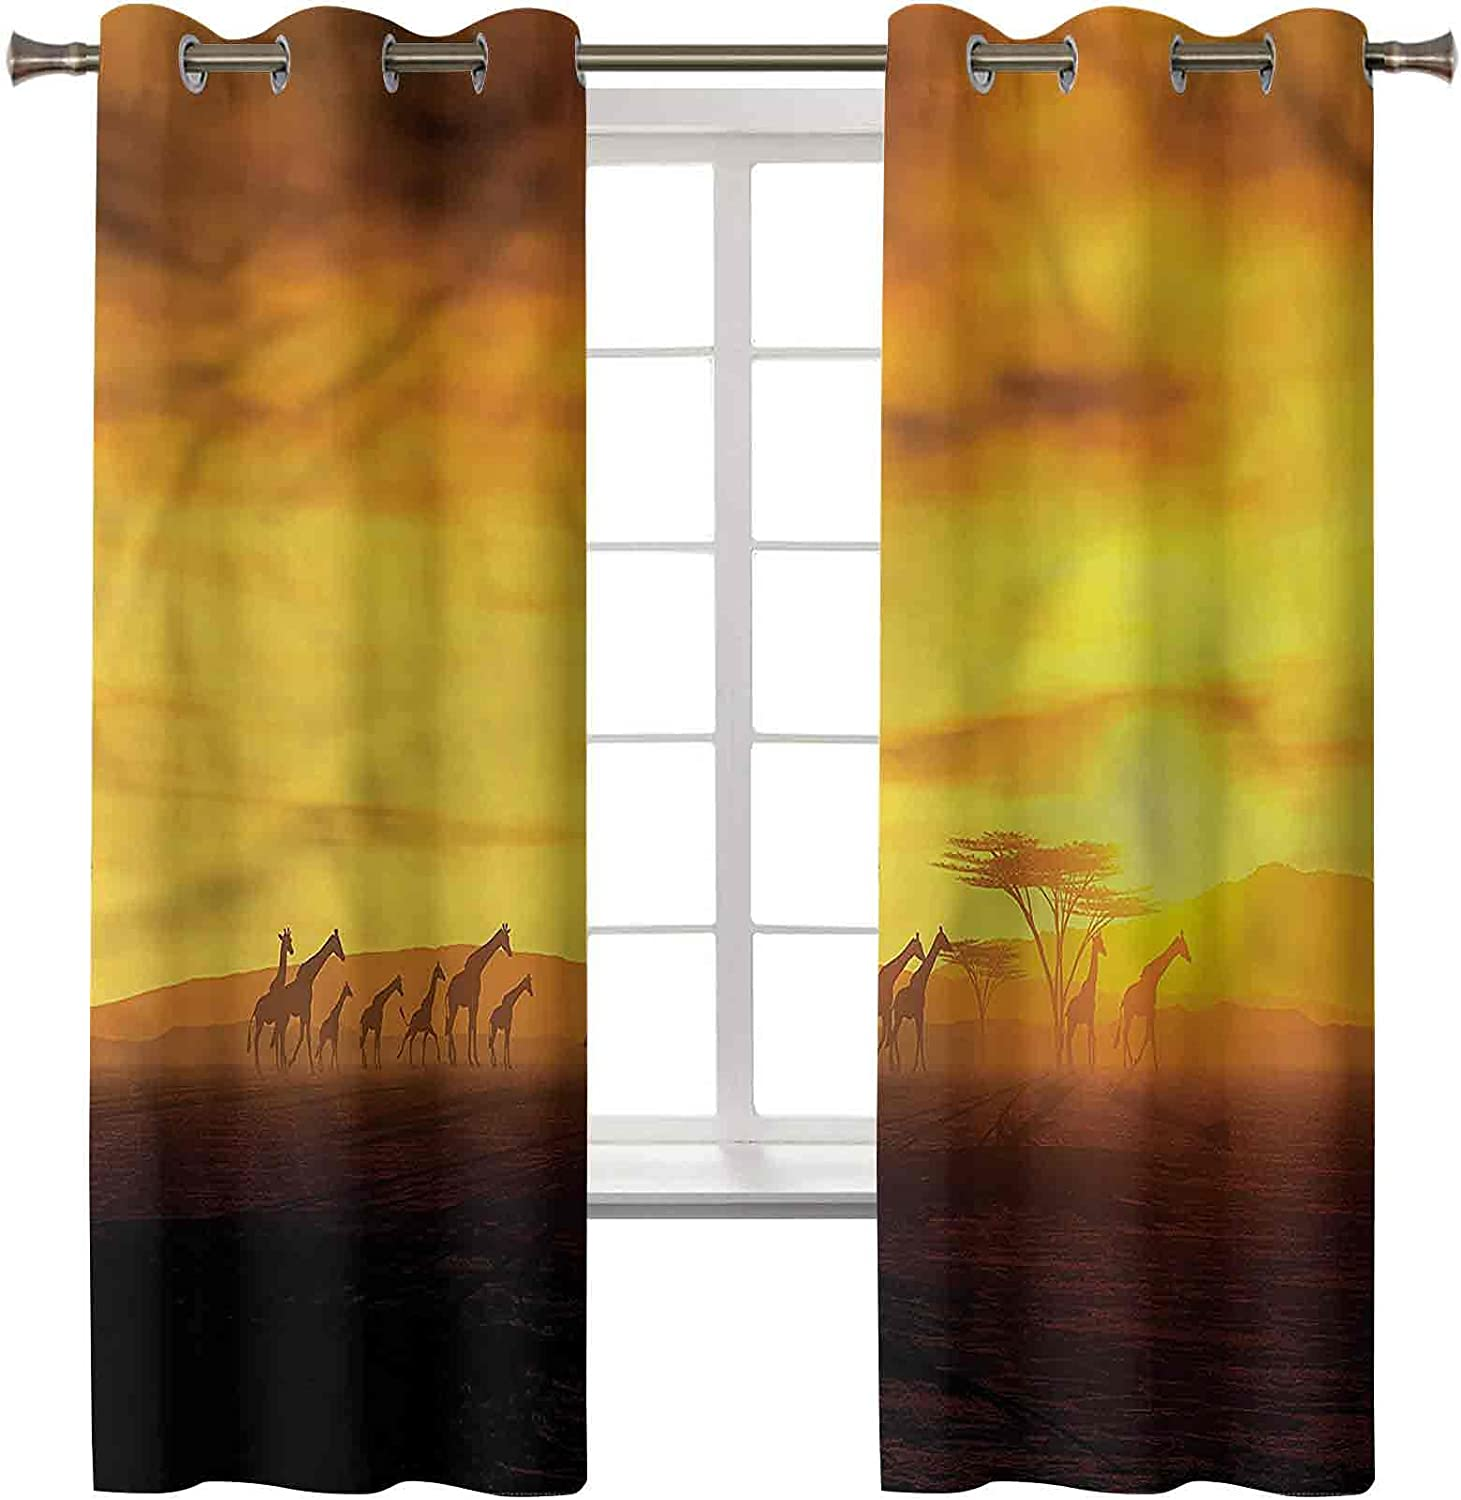 Blackout Window Curtain Treatment Insulated Safa Popular Thermal Dealing full price reduction